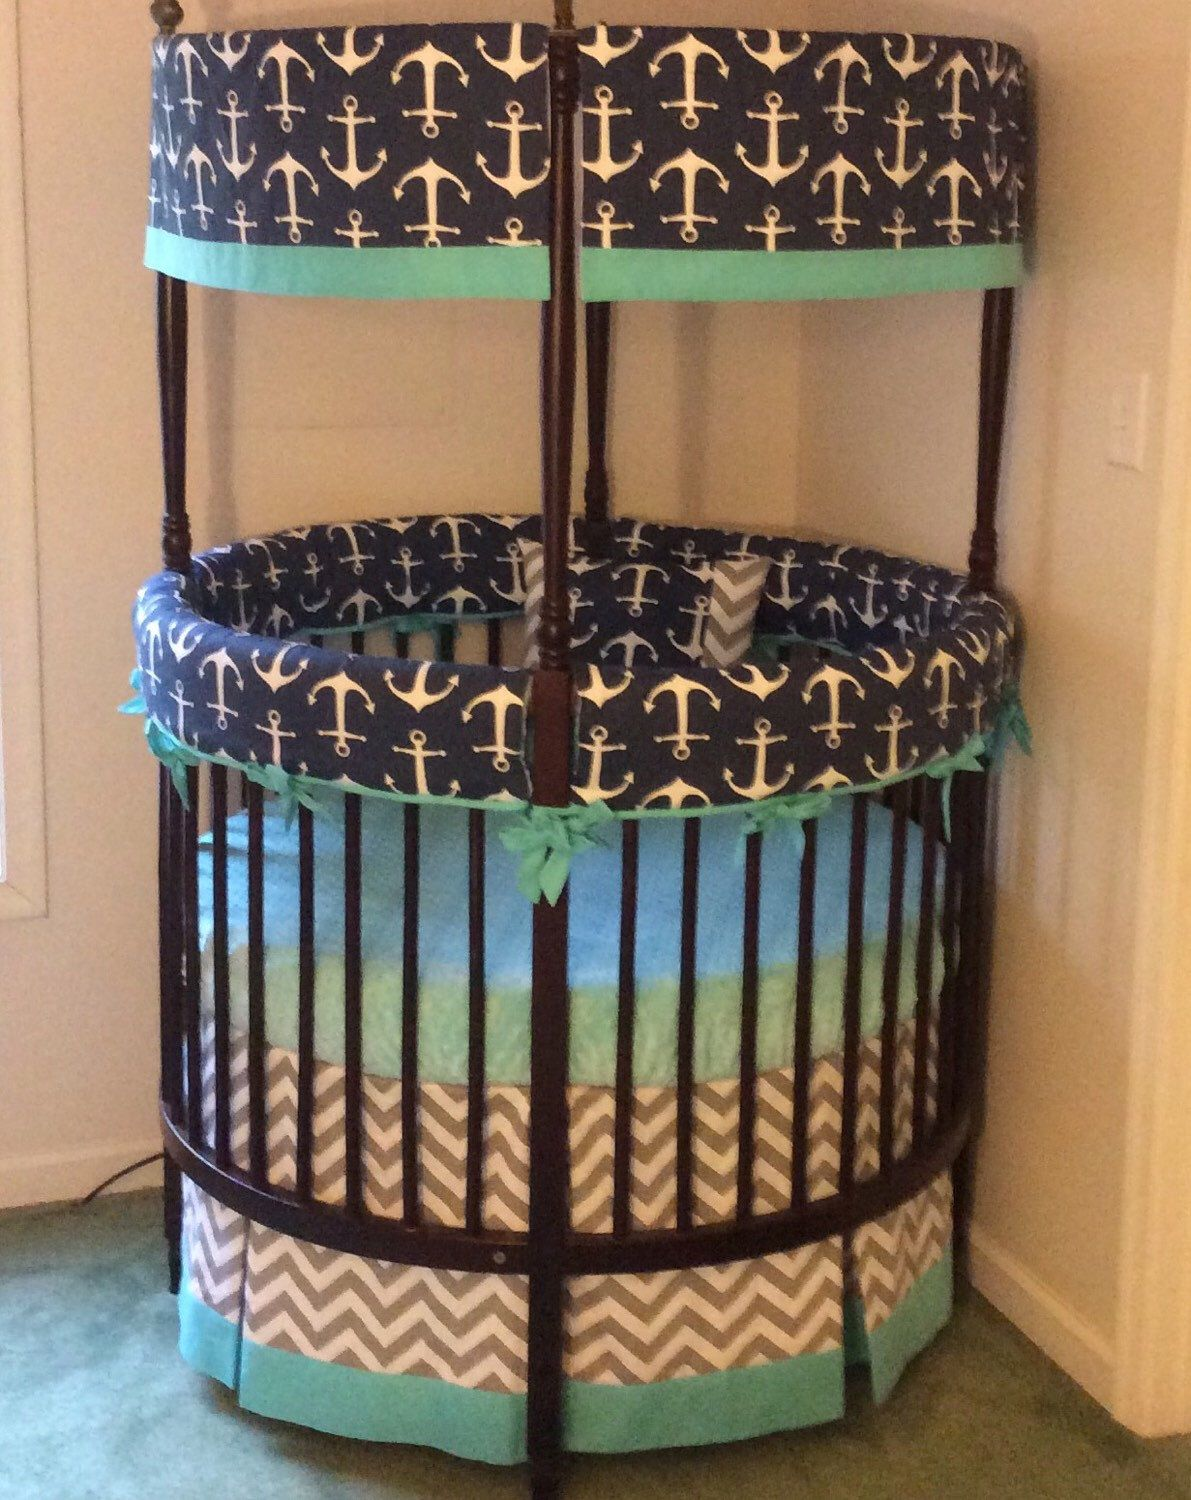 Ellery round crib for sale - Anchor Round Crib Bedding Made To Order Deposit